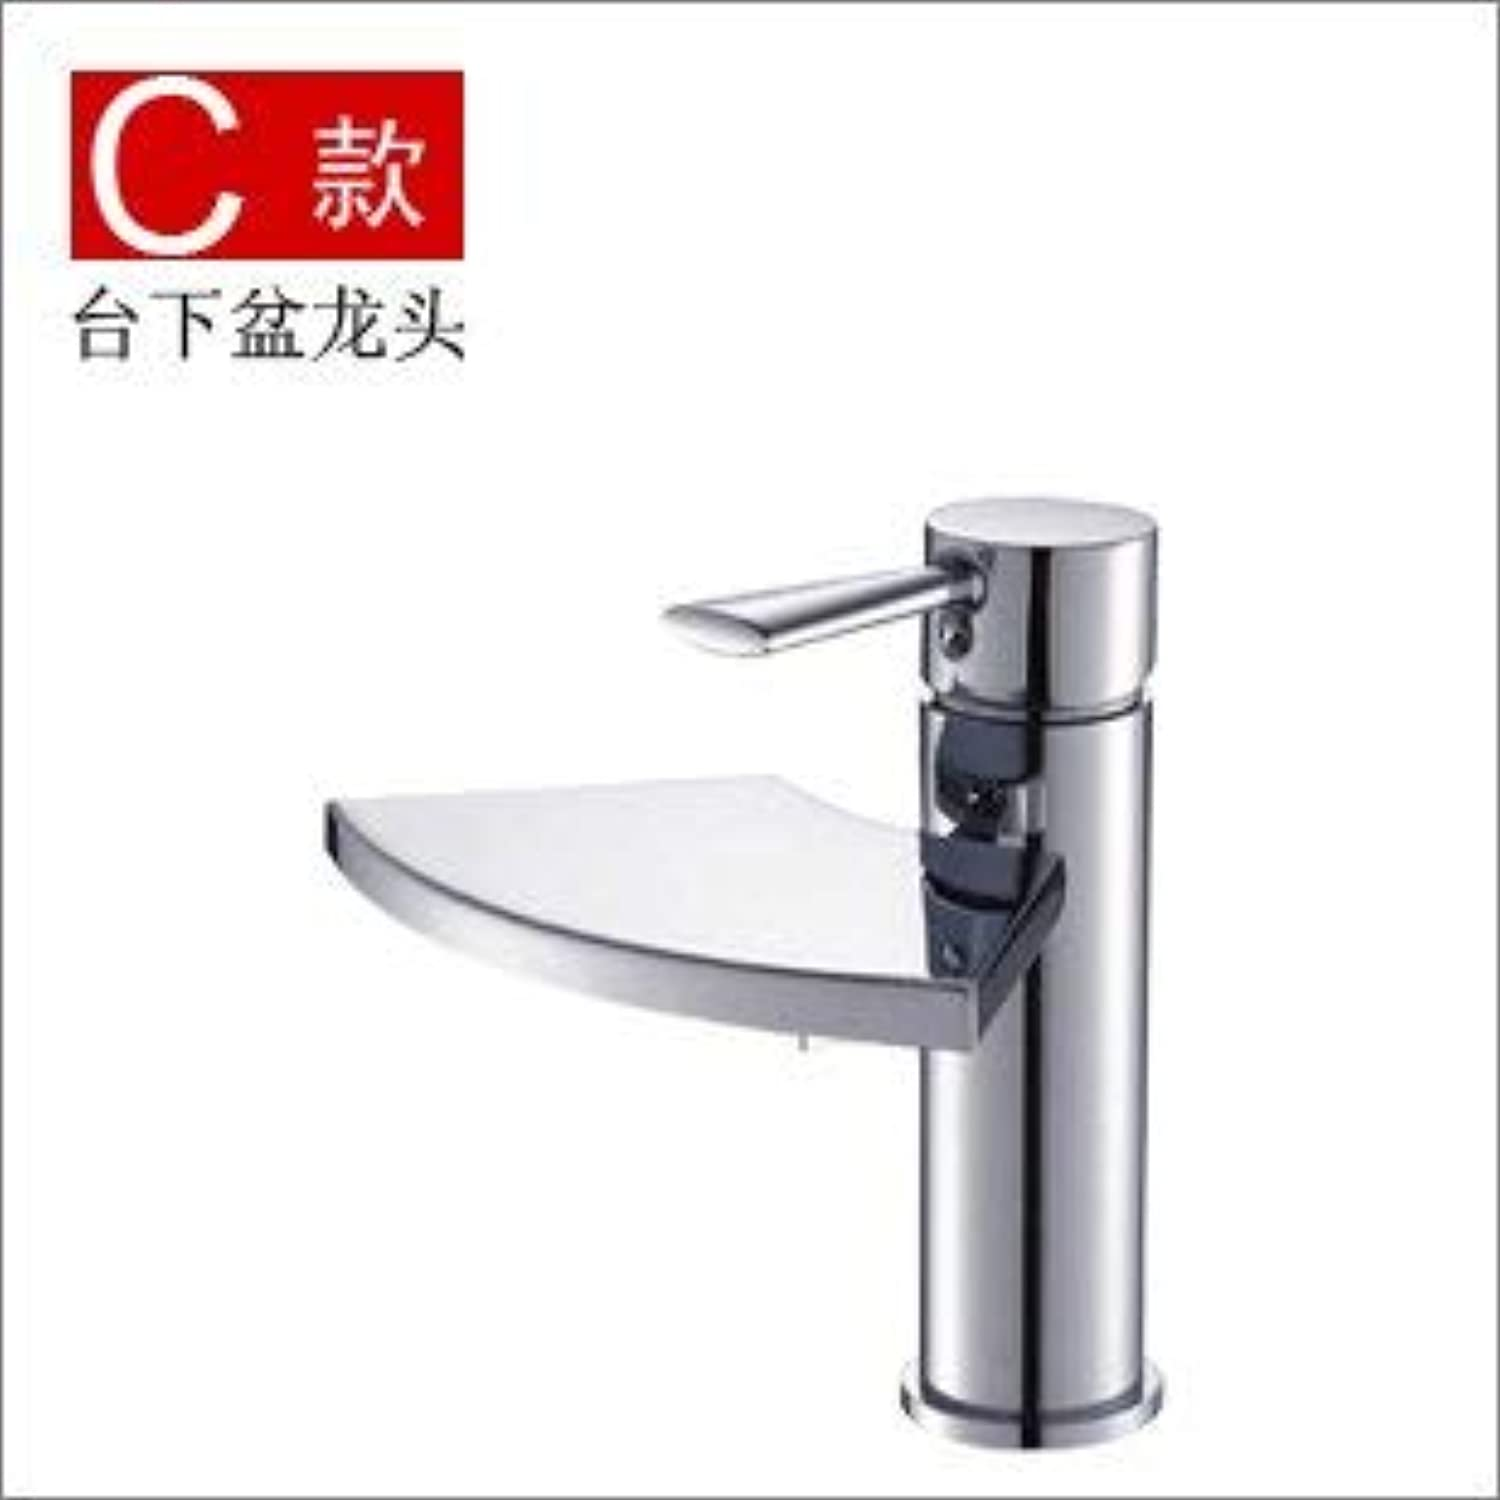 Oudan Basin Mixer Tap Bathroom Sink Faucet The waterfall basin mixer creative fan-shaped waterfall single handle single hole basin, hot and cold water taps, of the quartet rocker falls (color   2)